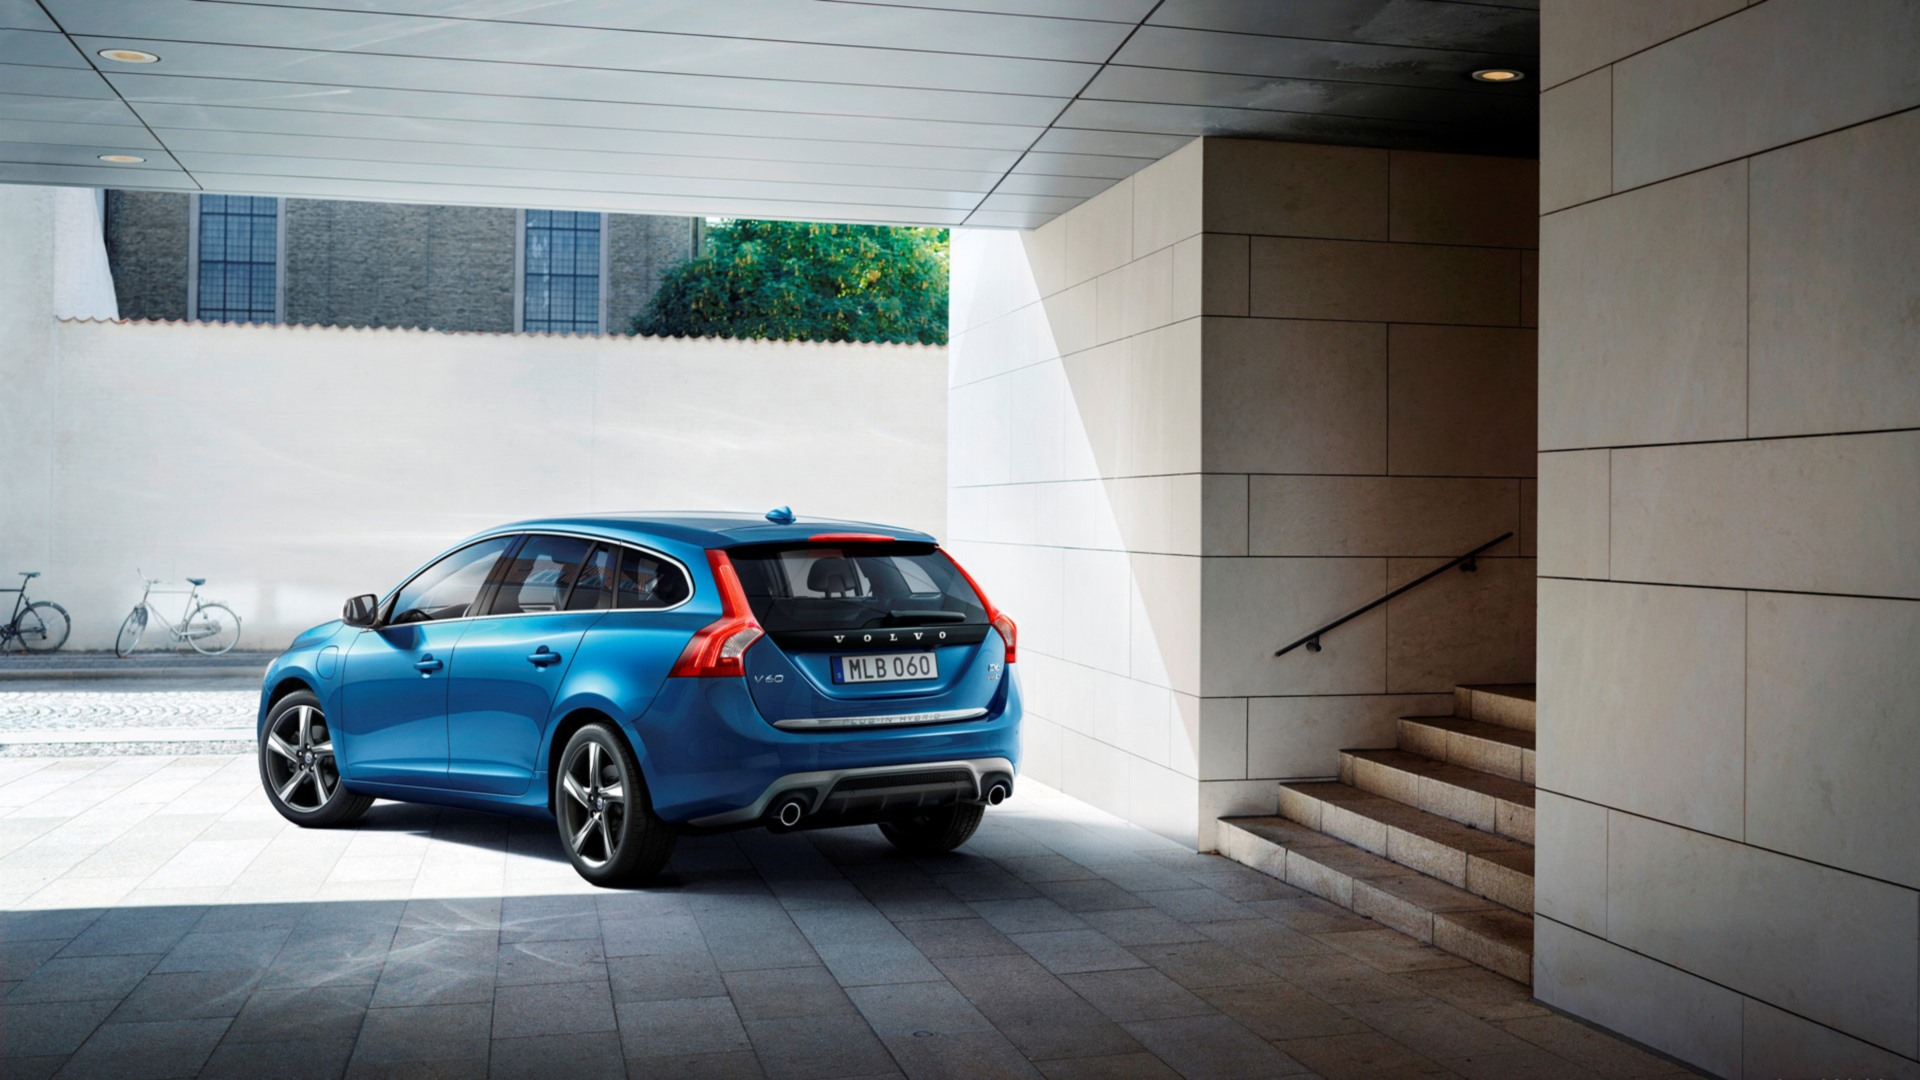 Volvo V60 Full HD Wallpaper and Background  1920x1080  ID:505686